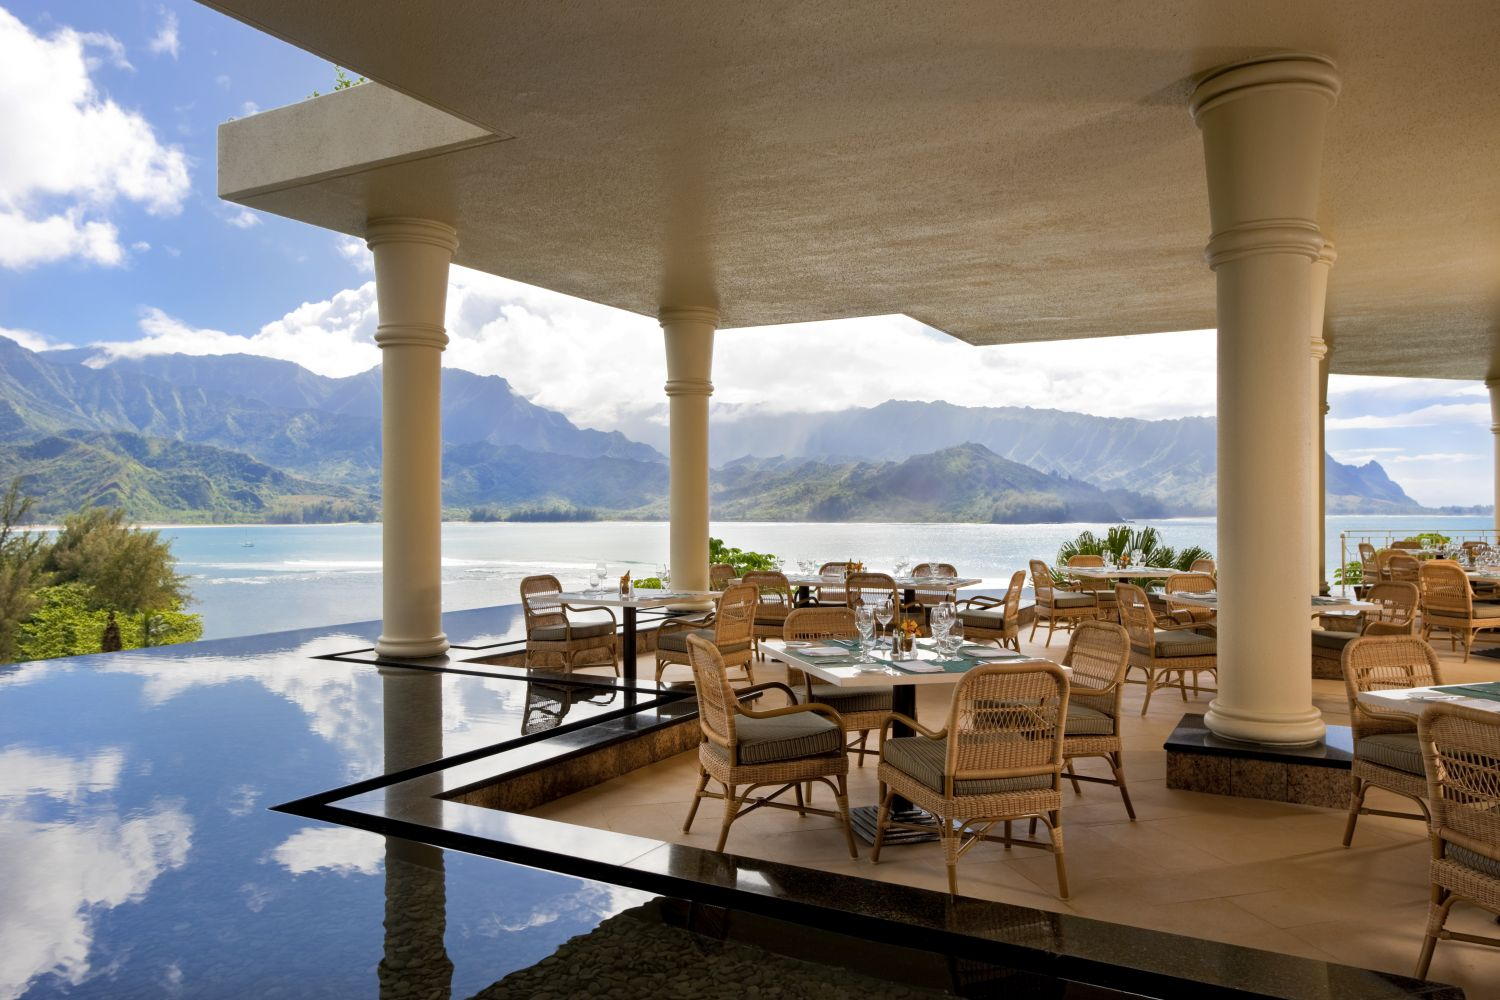 Gay Travel Names Starwood Hotels Resorts in Hawaii Hotel Collection of the Year